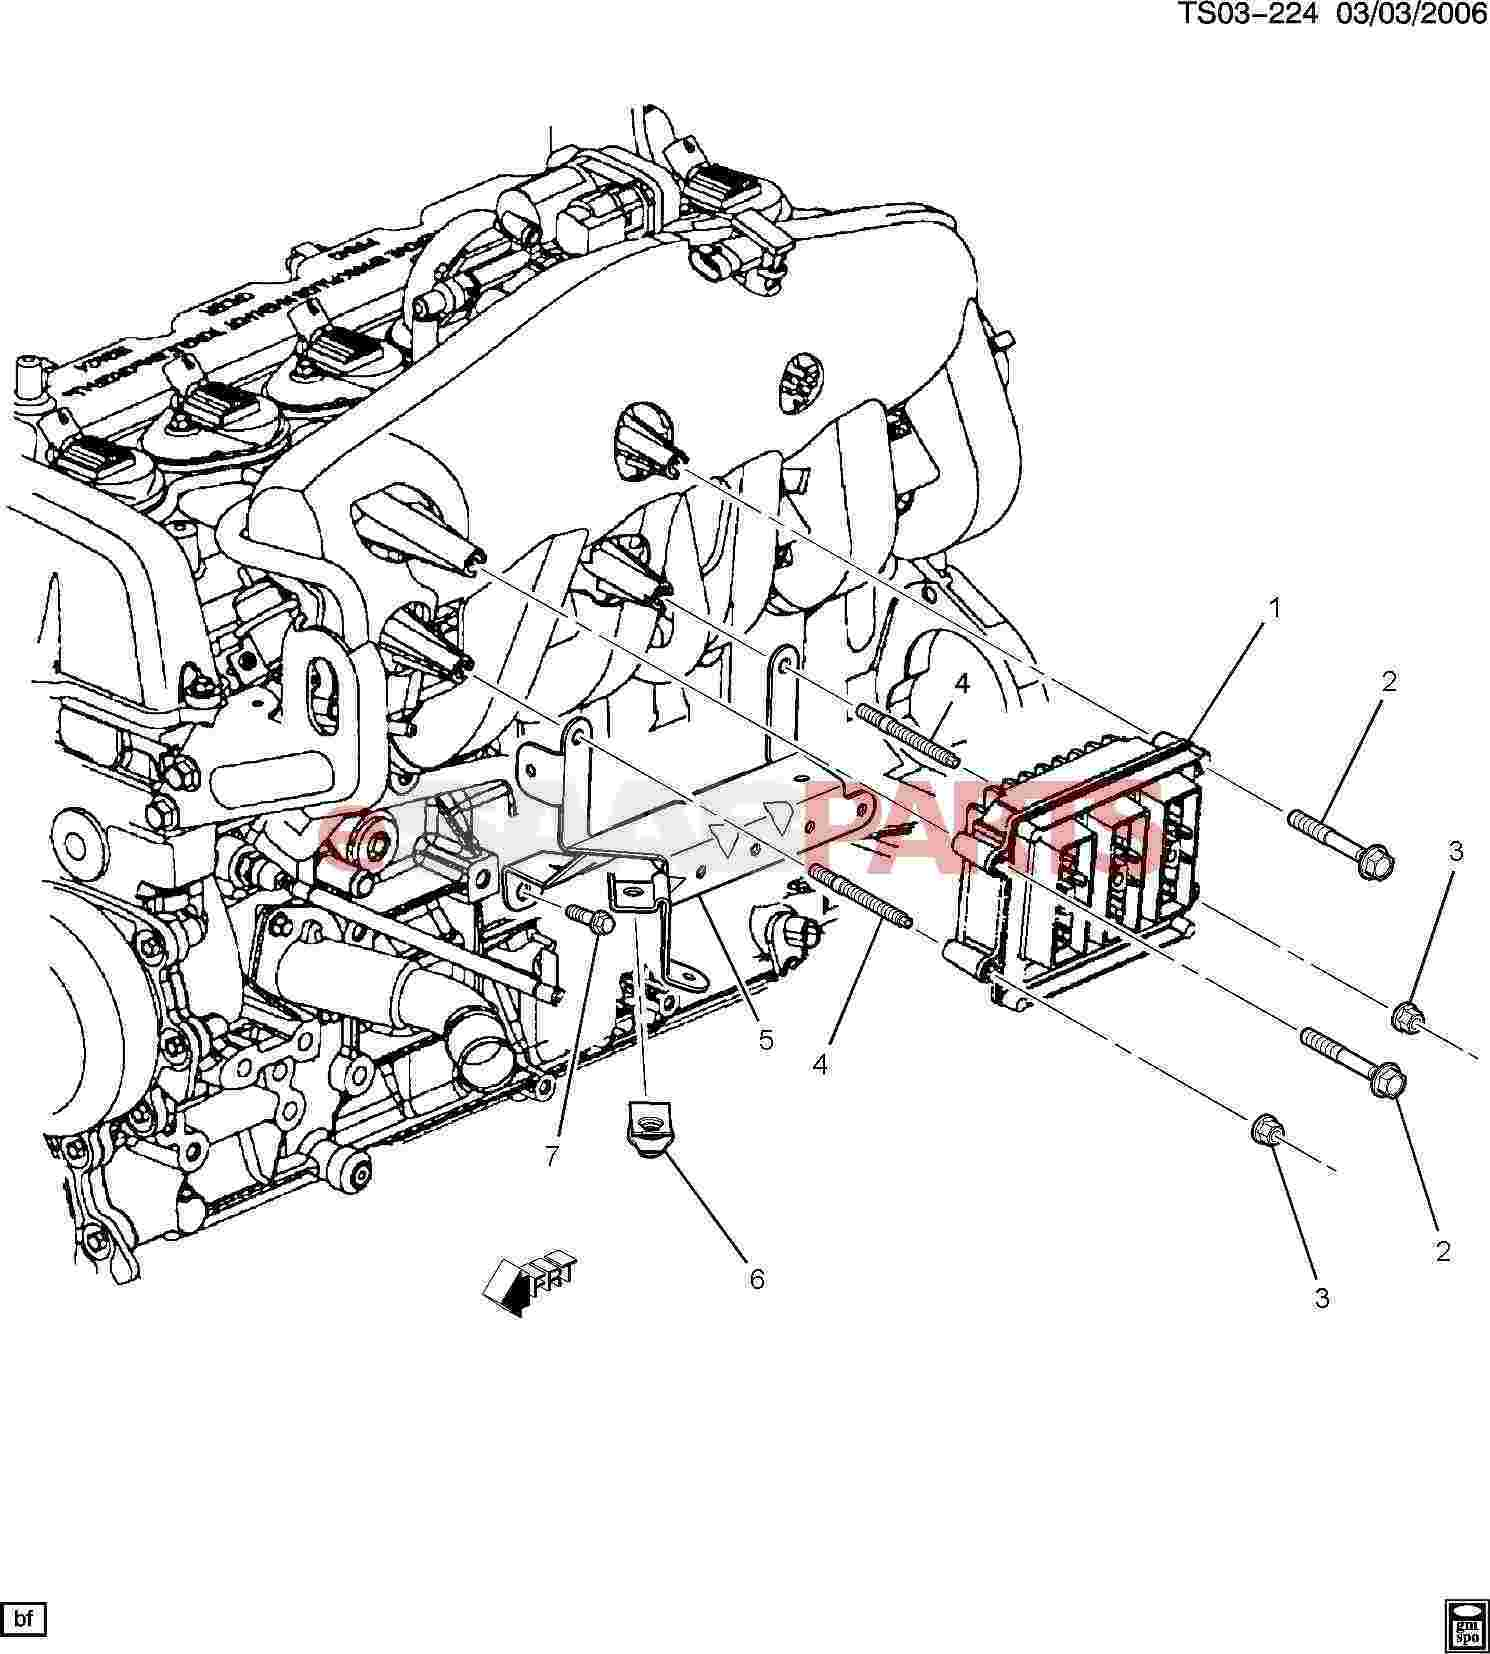 eSaabParts.com - Saab 9-7x > Electrical Parts > Electronic Modules > P.C.M.  Module & Wiring Harness (4.2S)